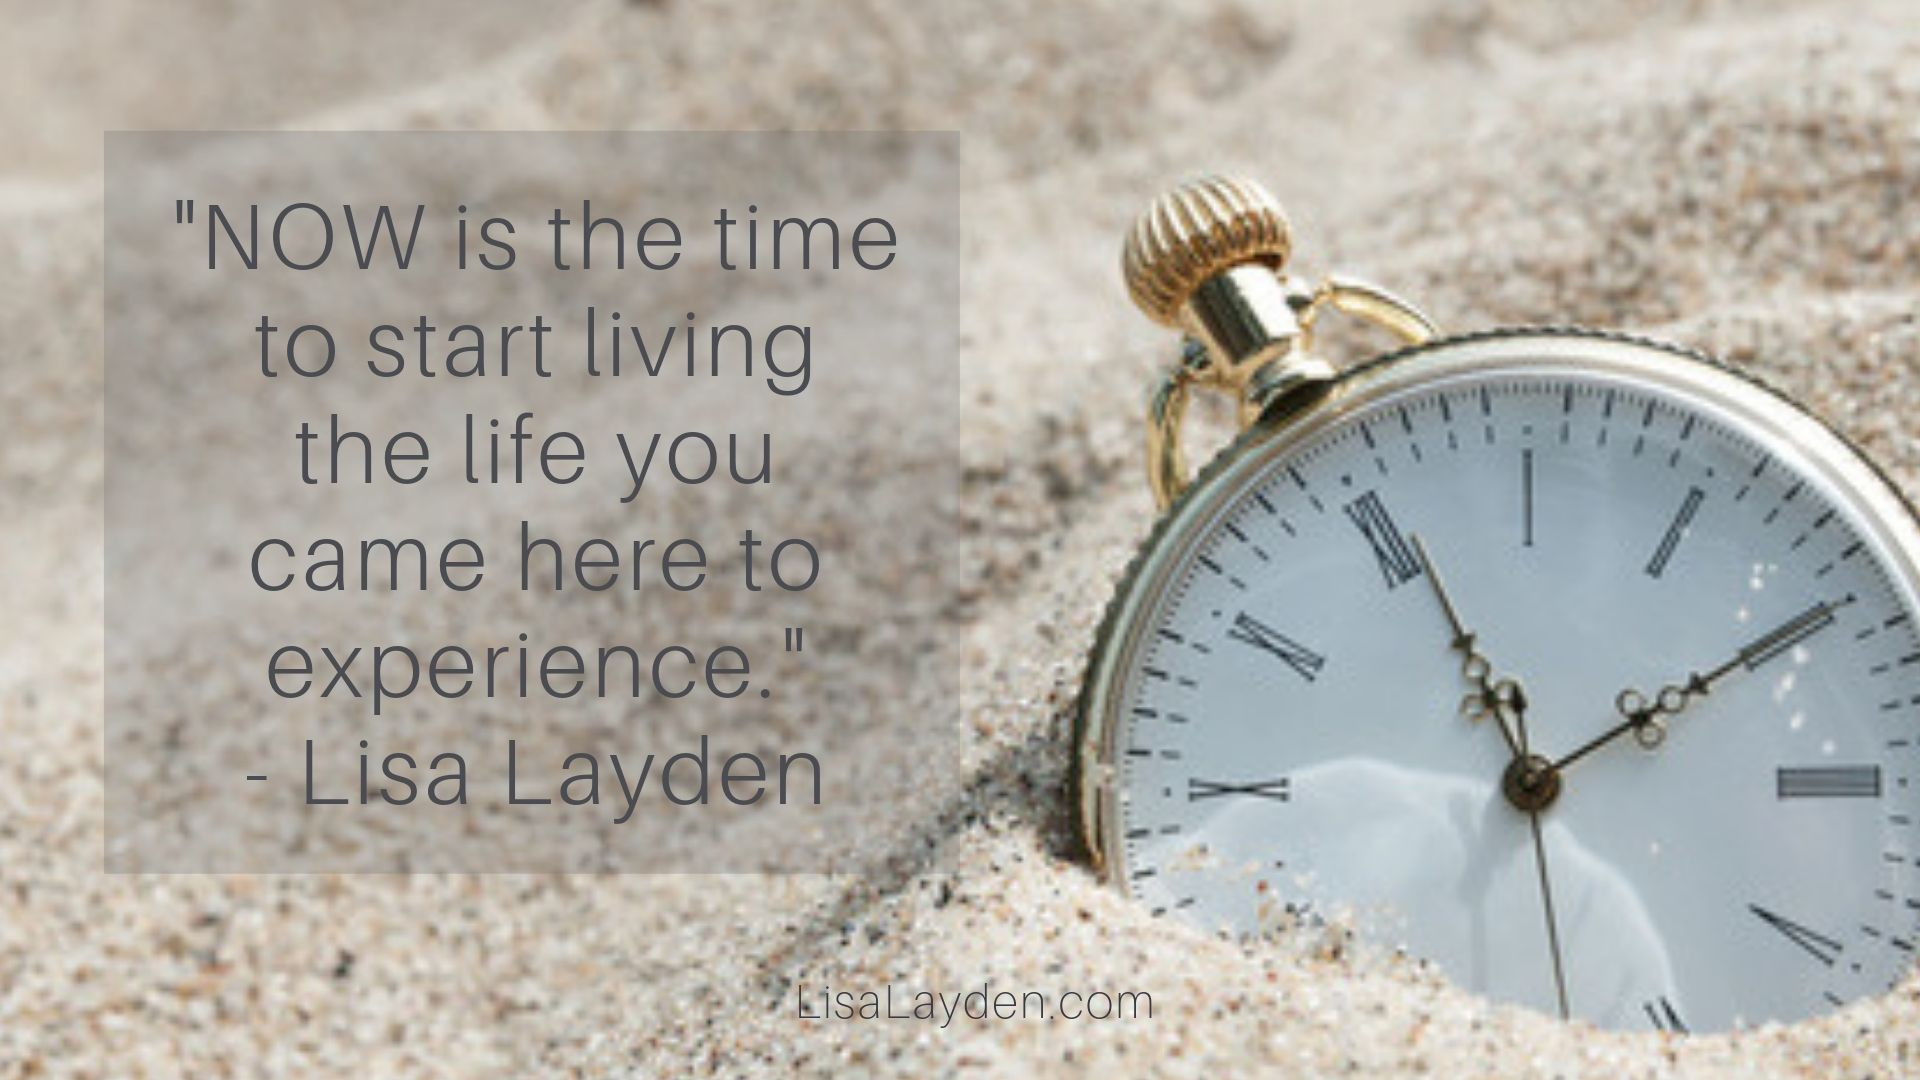 """Quote - """"NOW is the time to start living the life you came here to experience."""" – Lisa Layden"""